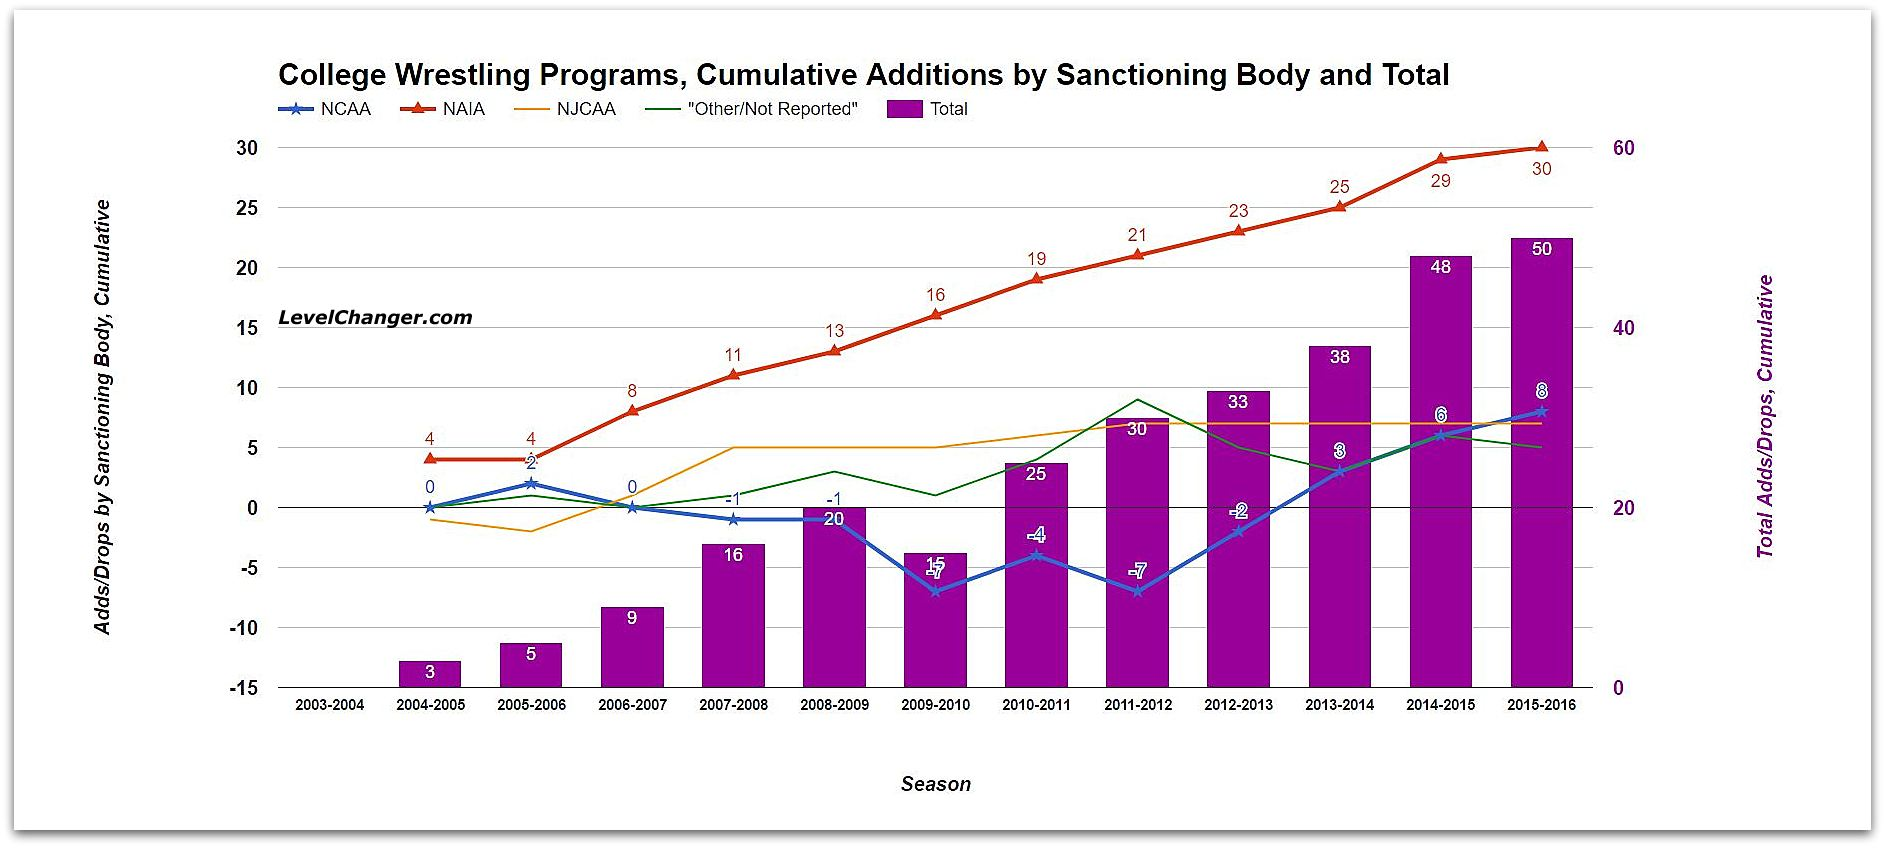 College Wrestling Programs Cumulative Additions by Sanctioning Body and Total Source: US Dept. of Education Tap or click to enlarge